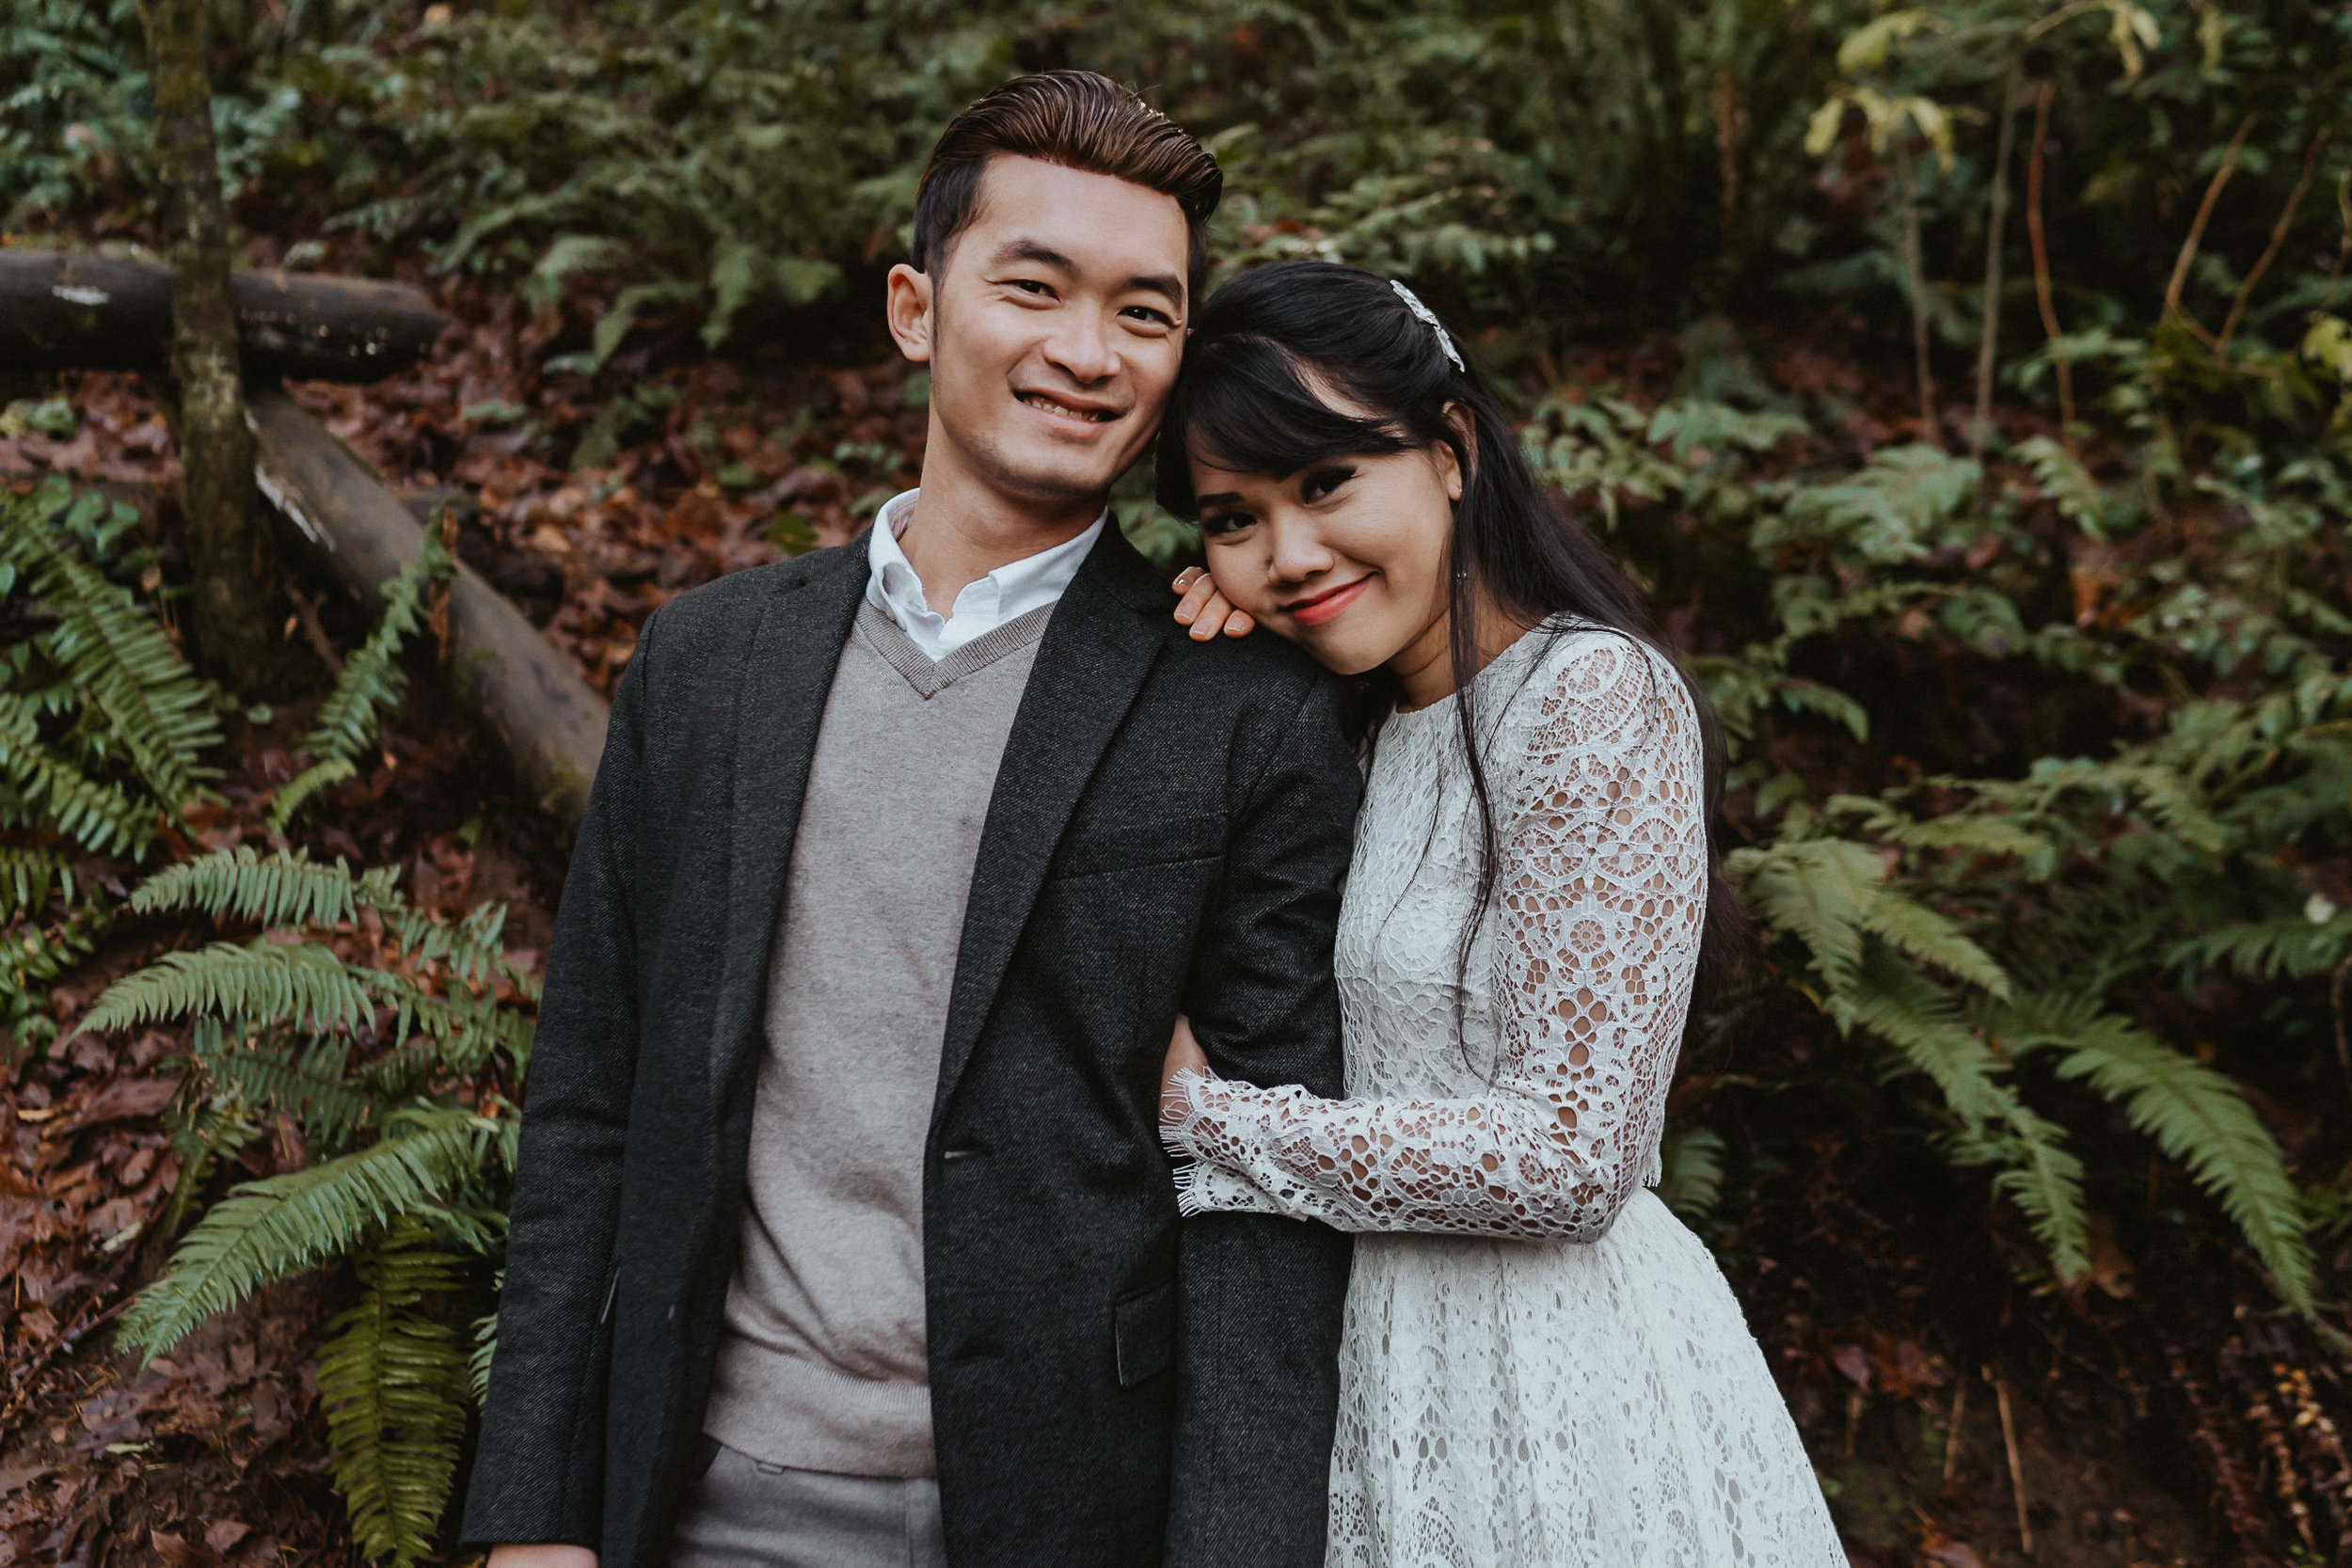 engagement portrait portland photographer Alfred Tang